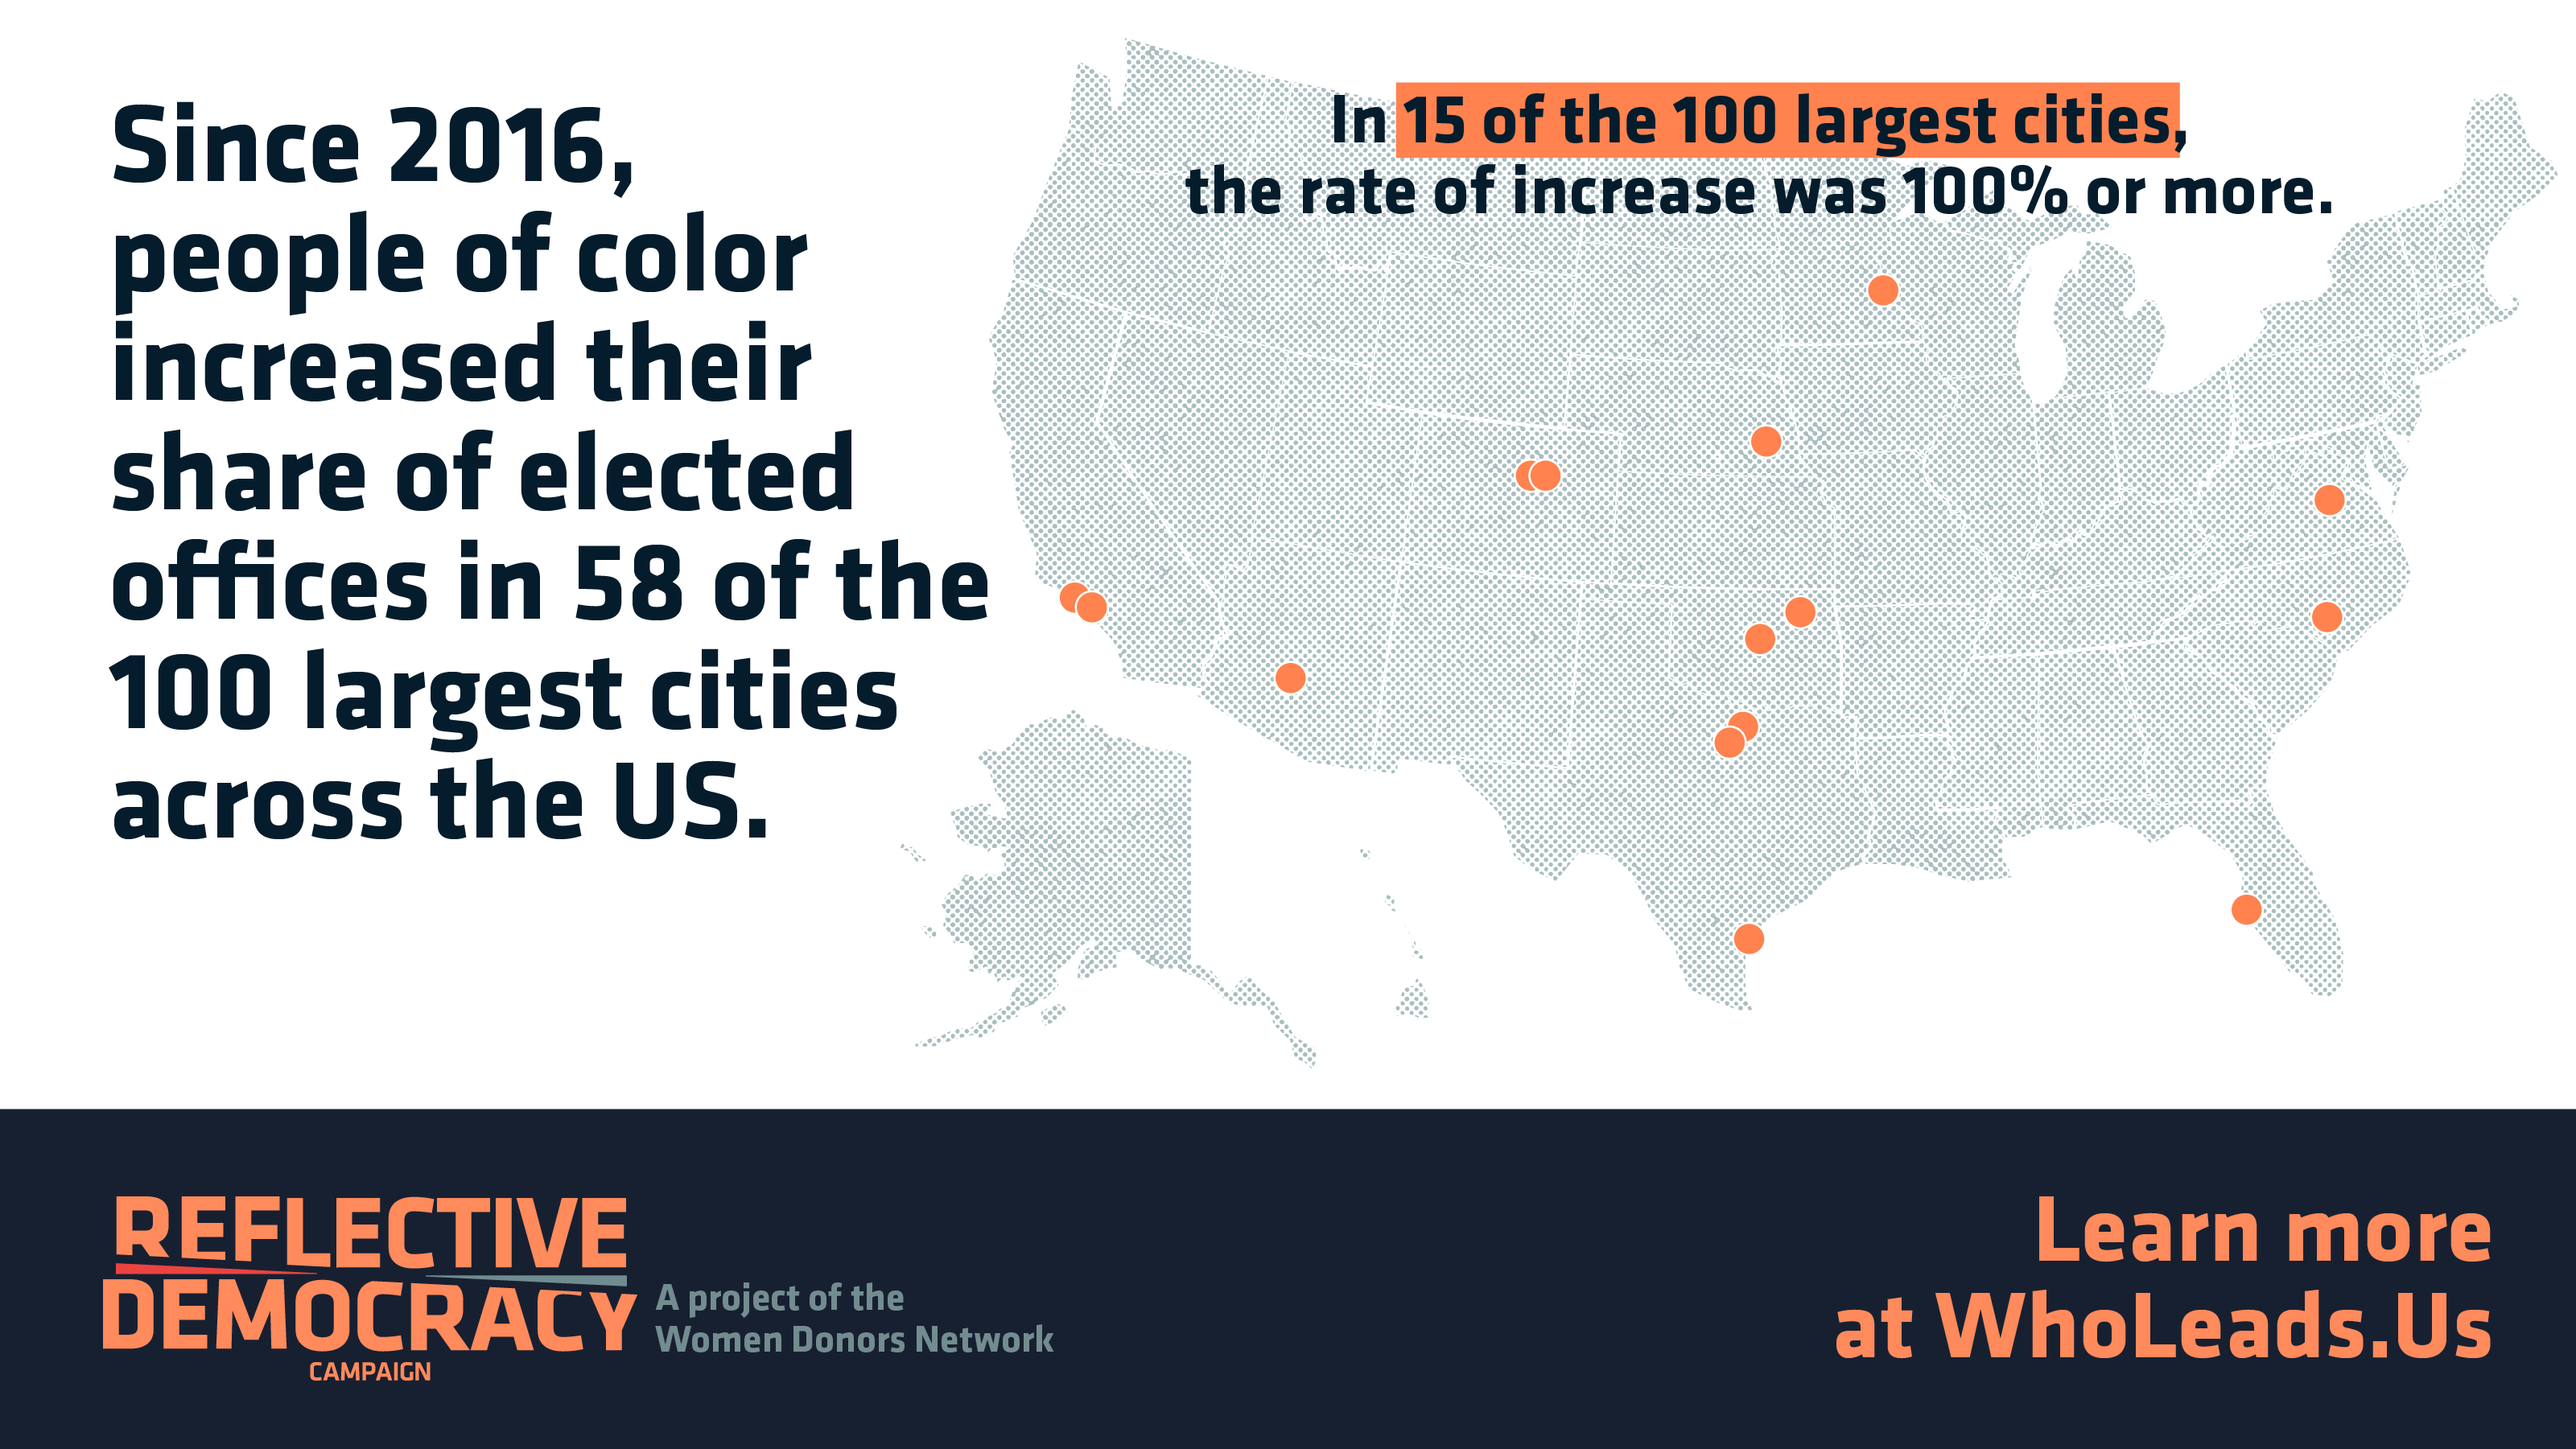 Map showing 35 cities where people of color increased their share of elected offices 100% or more.